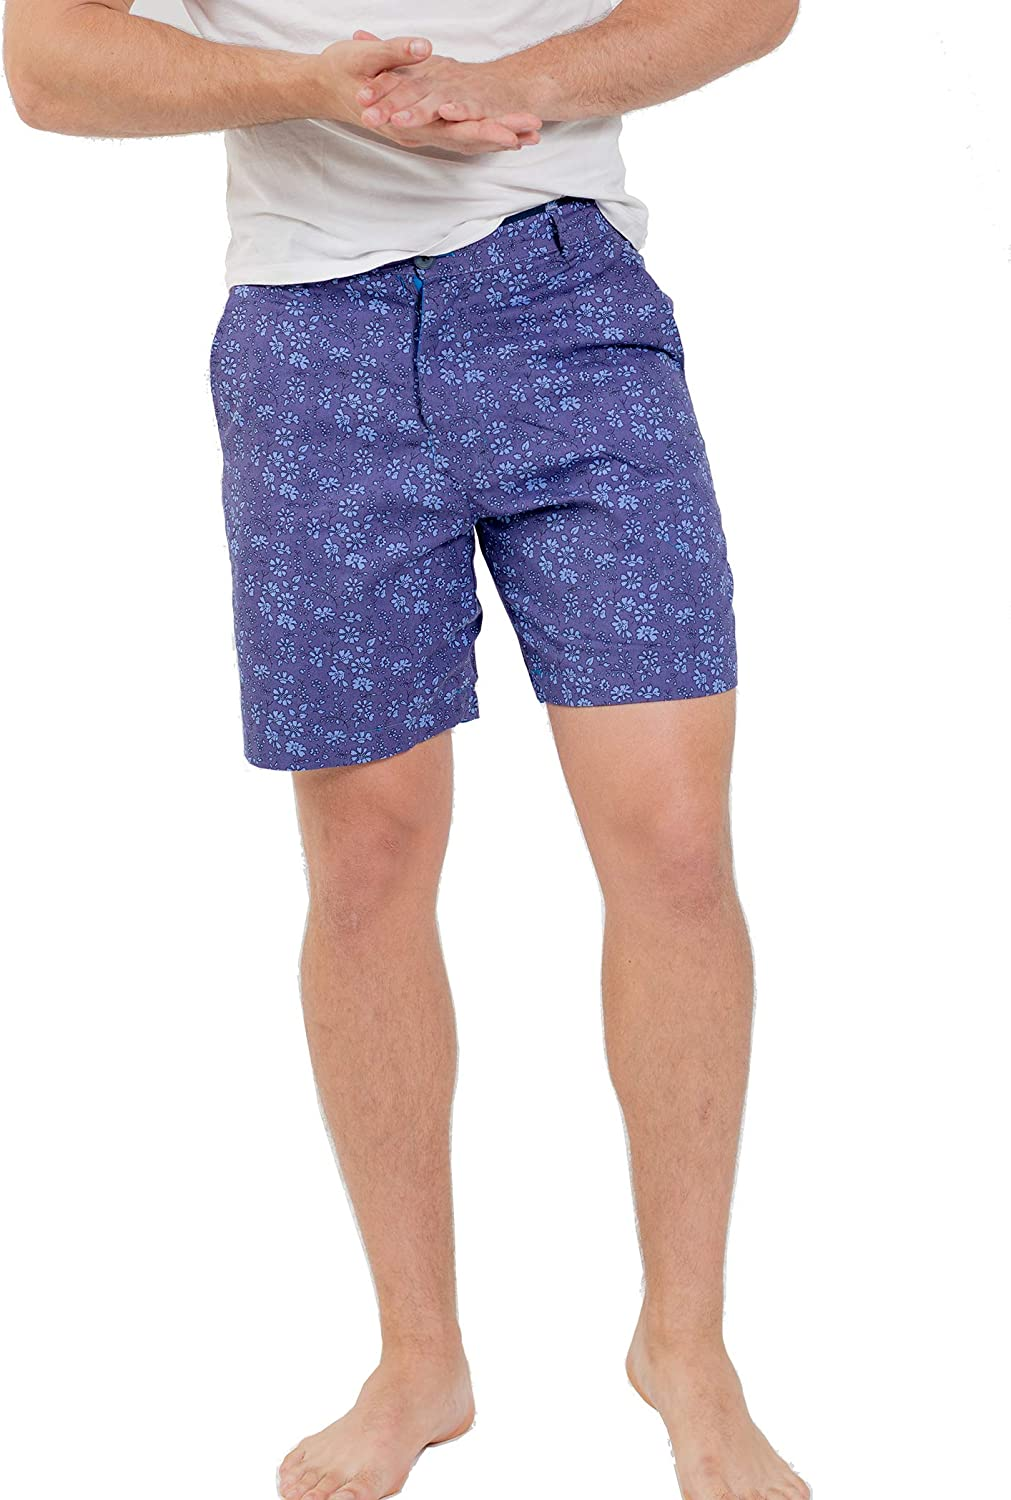 Max and Lucas Mens mid Length Shorts Blue Floral Printed with Side Pockets